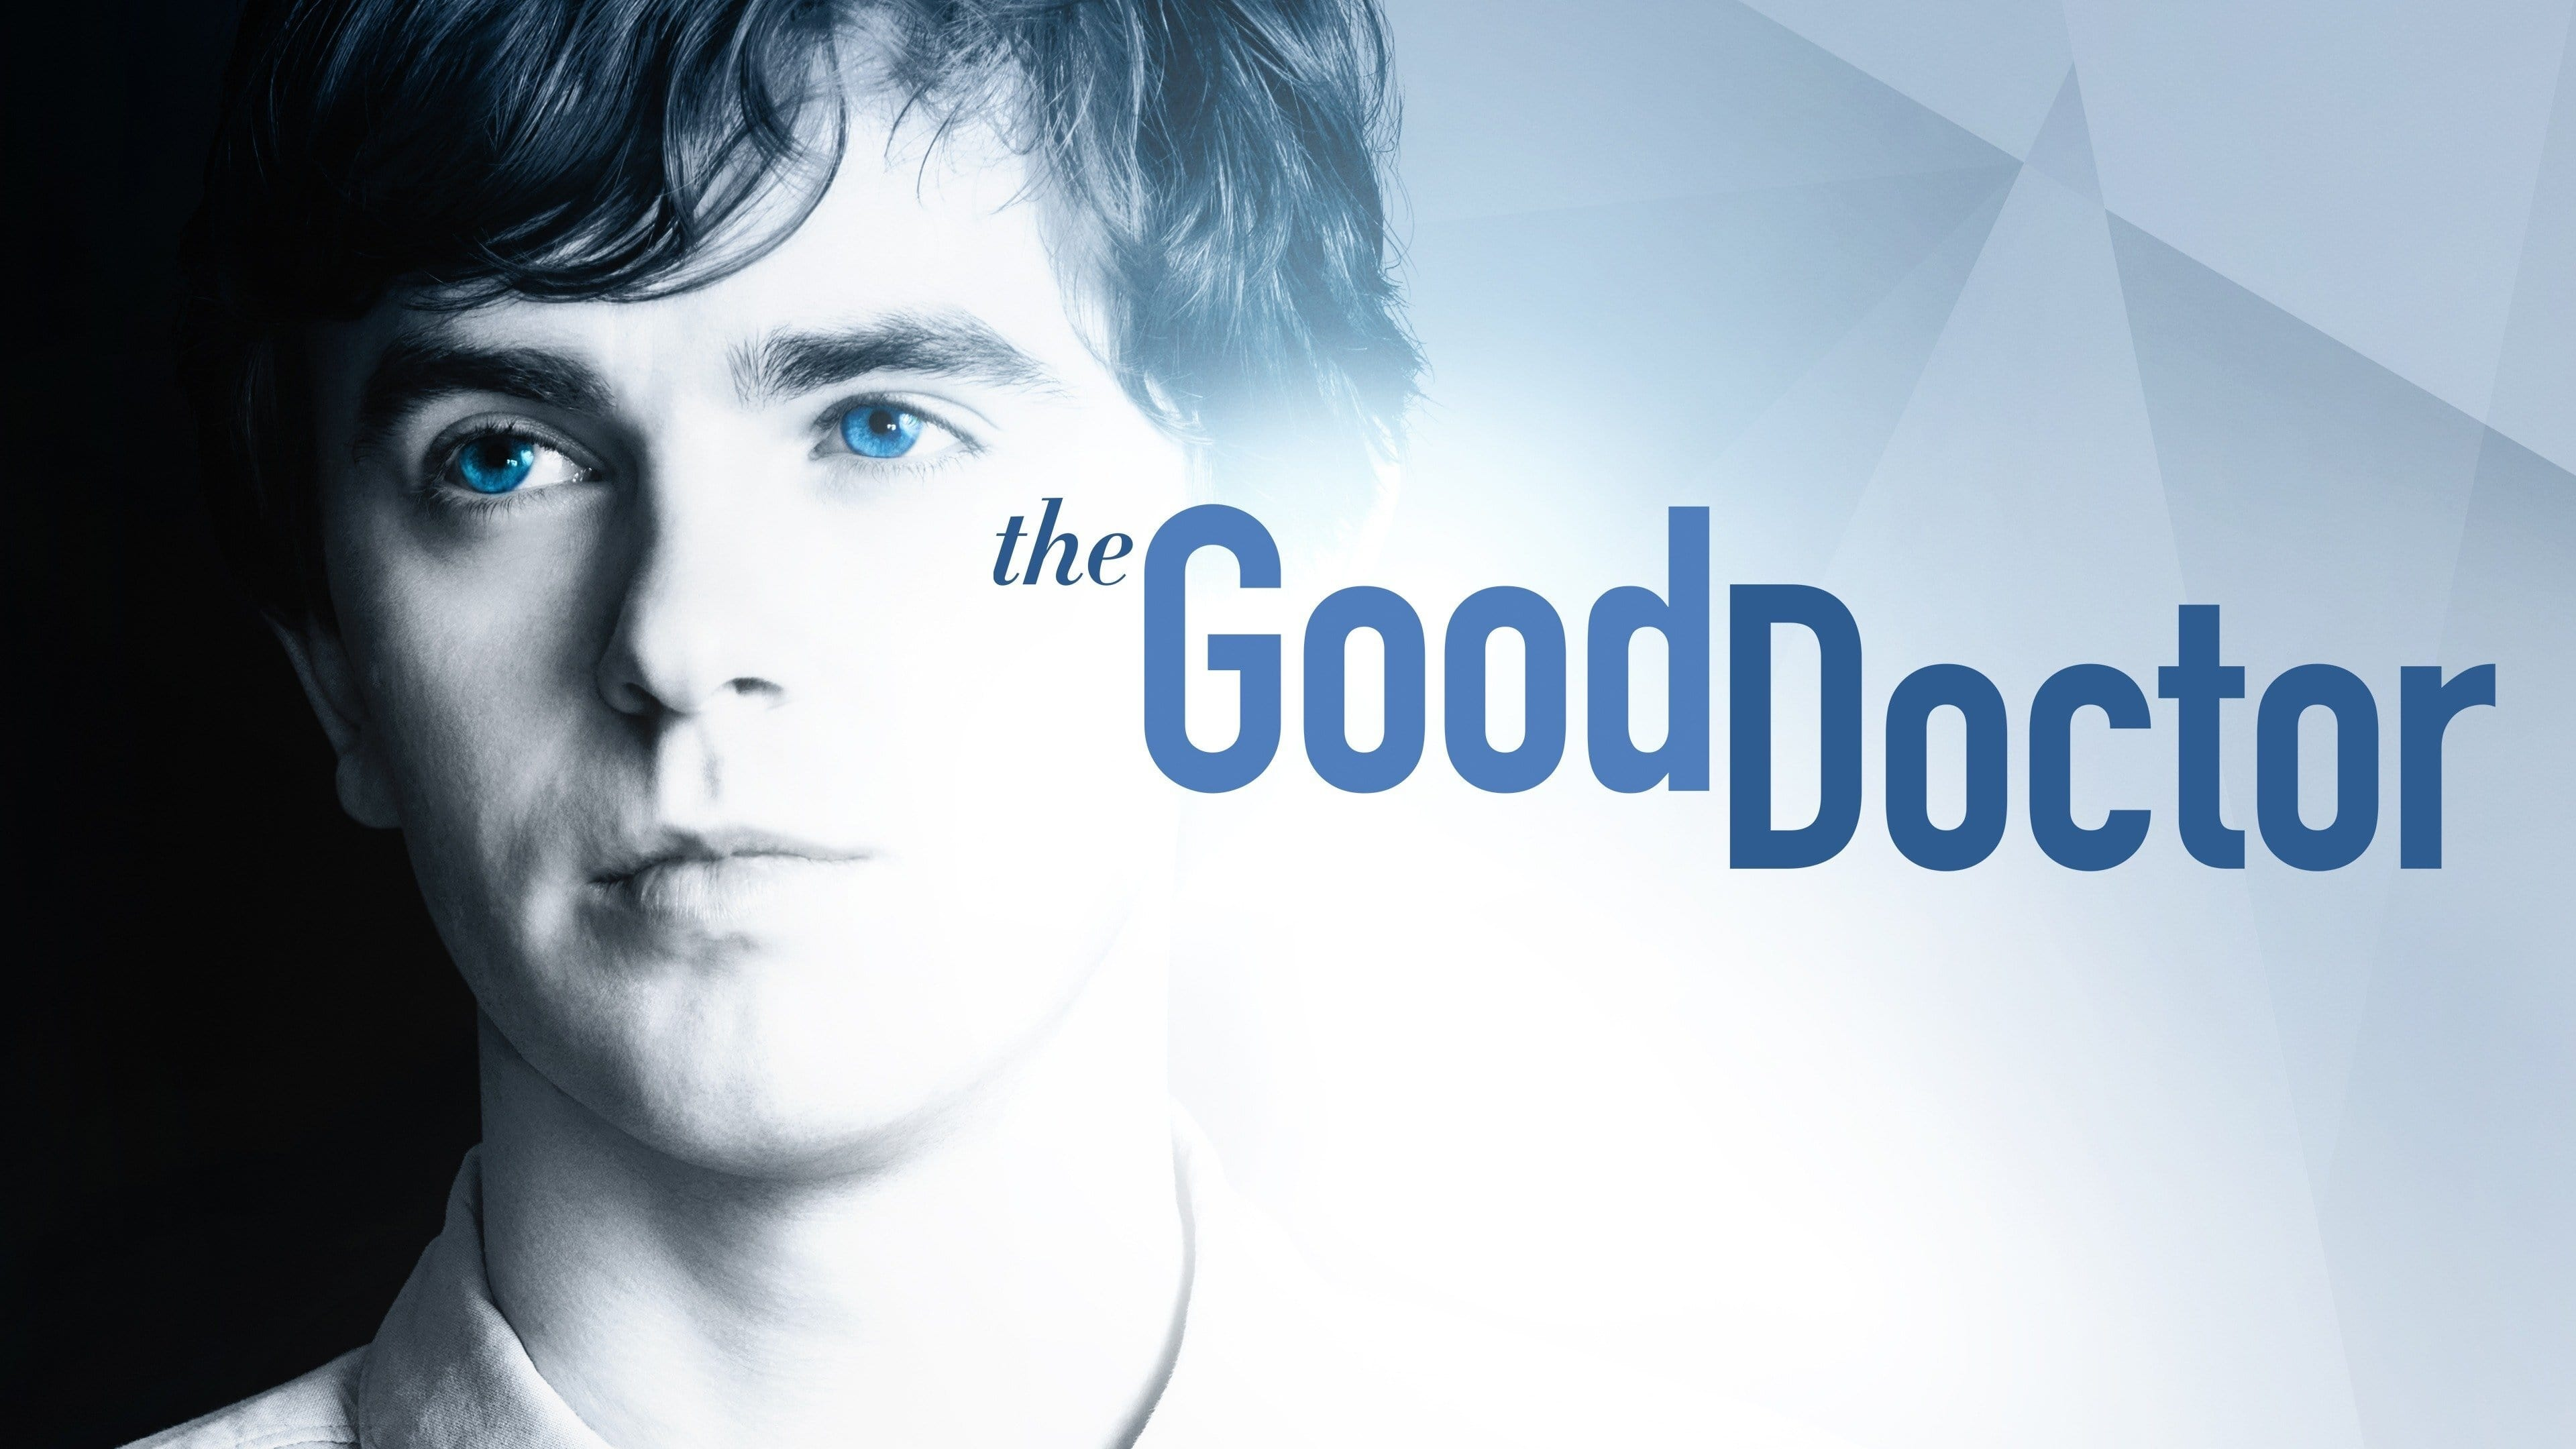 The Good Doctor - Season 3